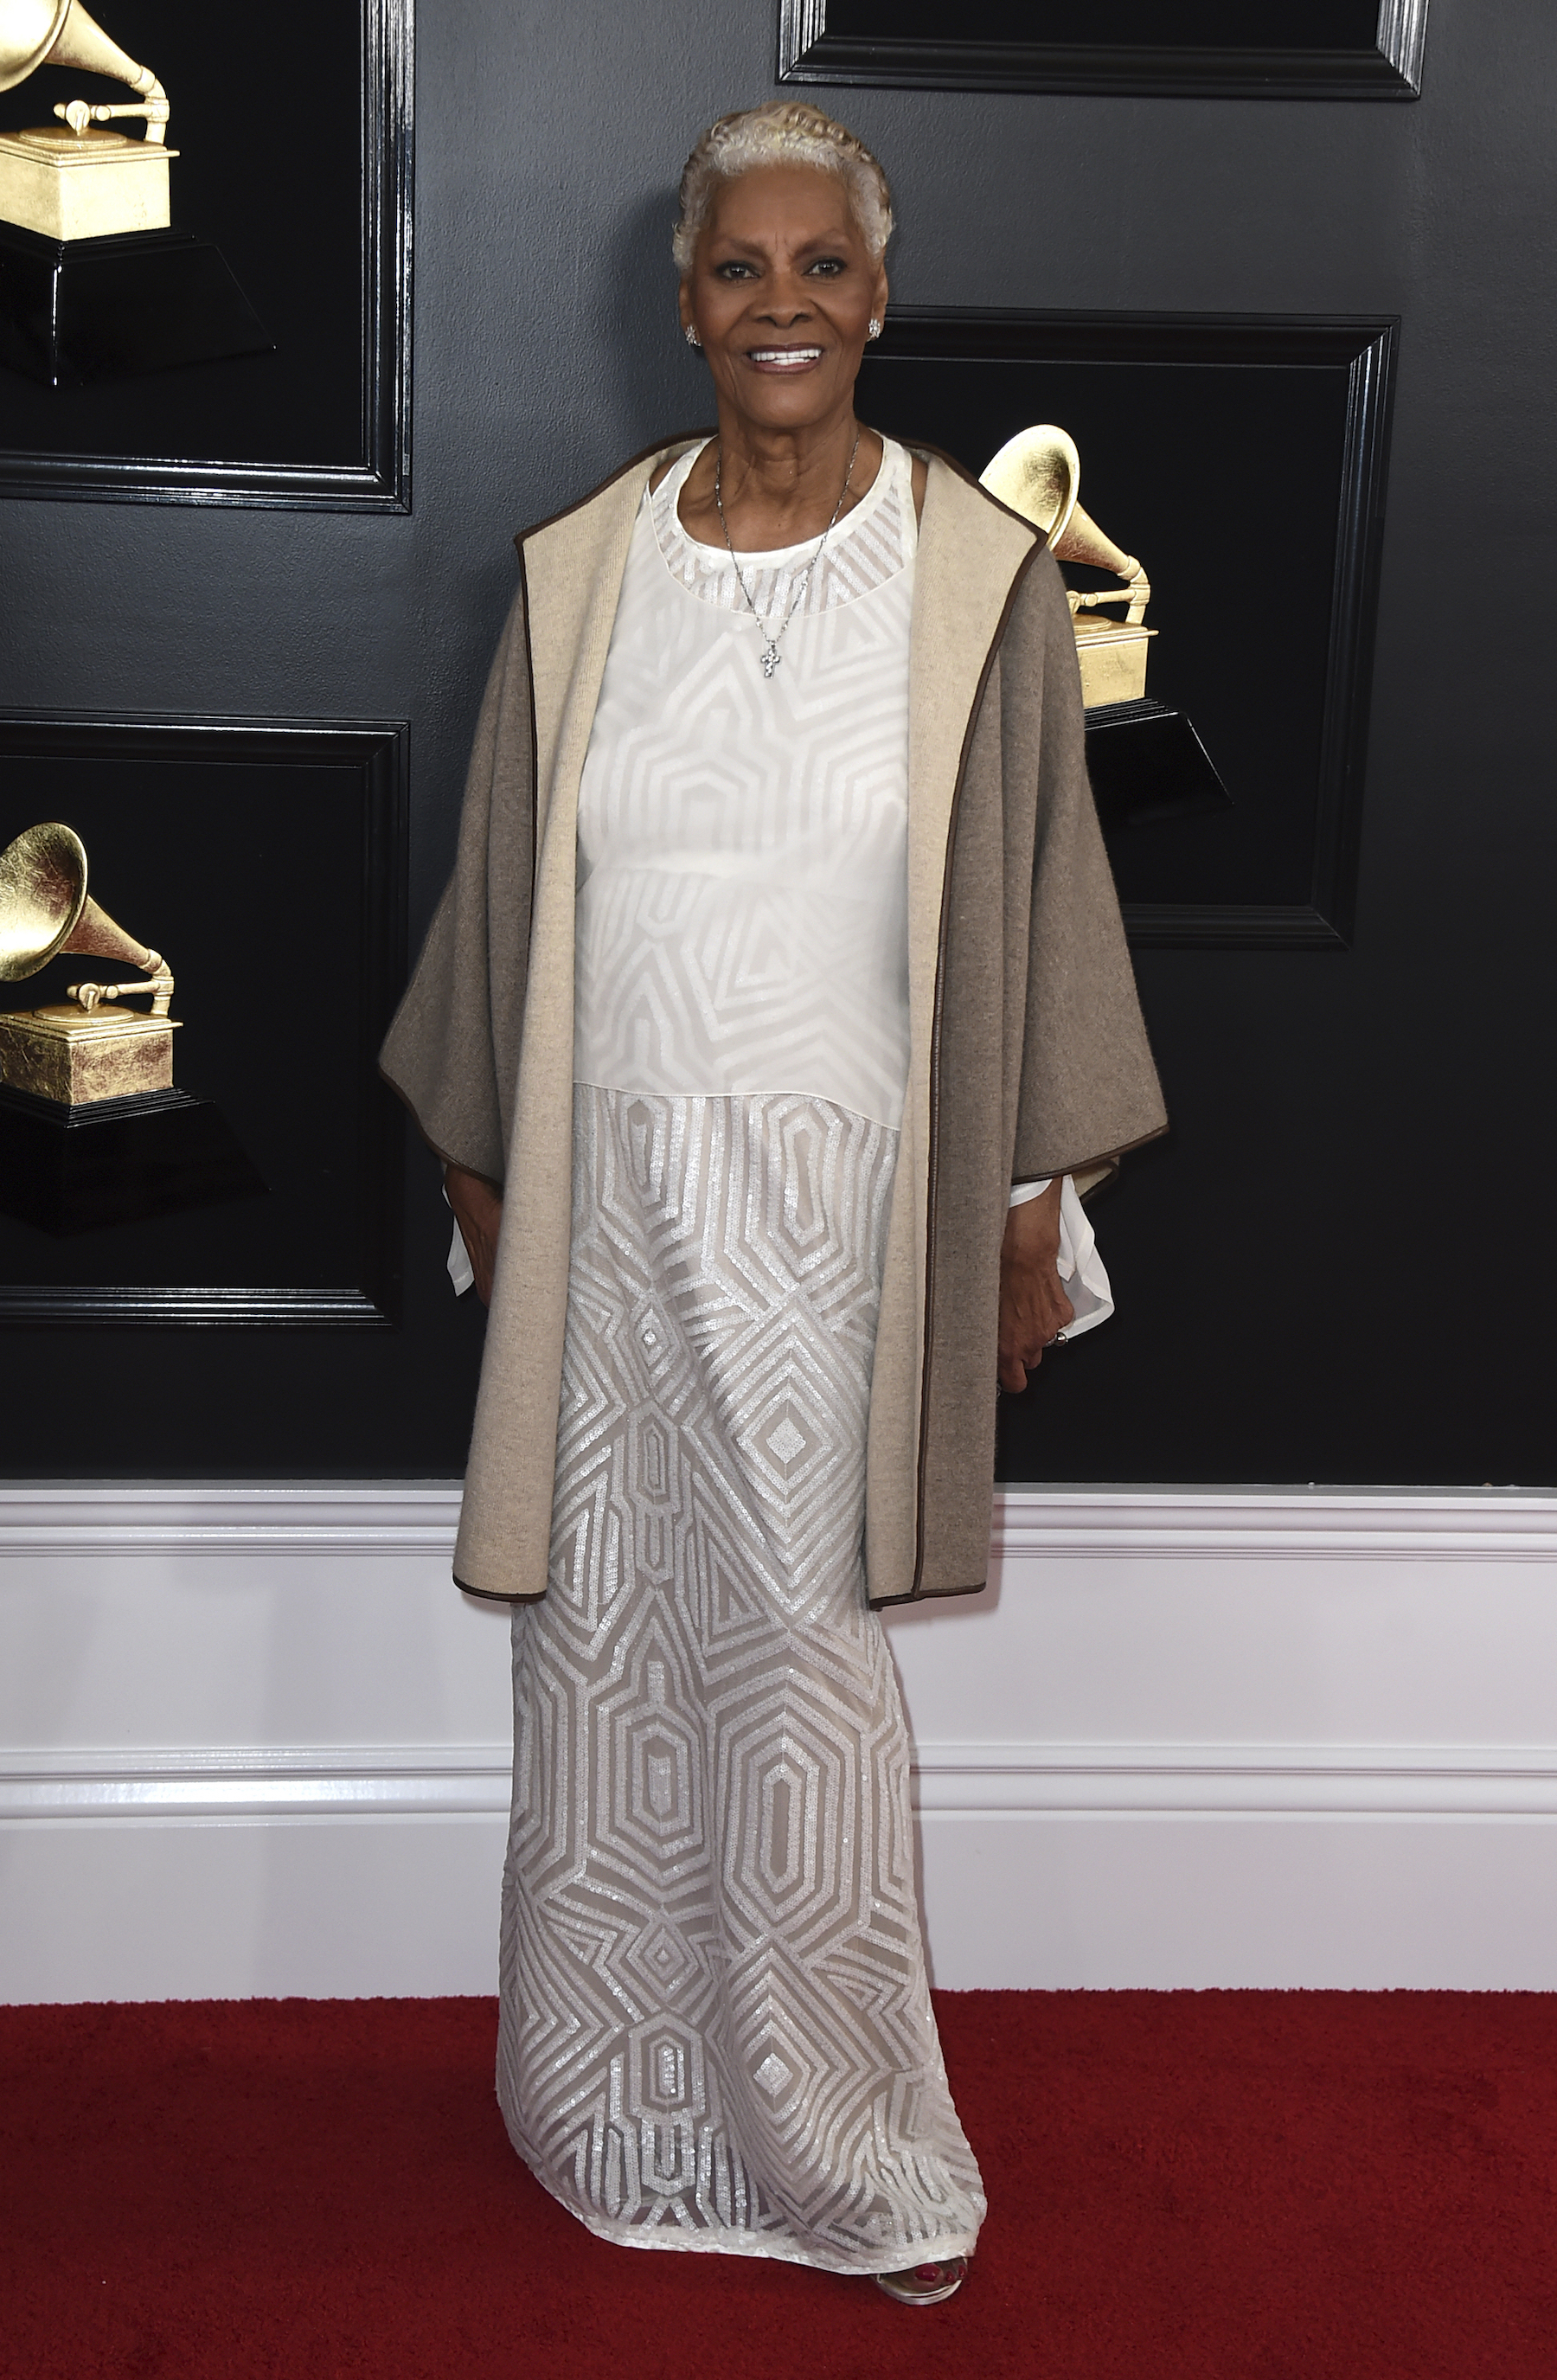 "<div class=""meta image-caption""><div class=""origin-logo origin-image ap""><span>AP</span></div><span class=""caption-text"">Dionne Warwick arrives at the 61st annual Grammy Awards at the Staples Center on Sunday, Feb. 10, 2019, in Los Angeles. (Jordan Strauss/Invision/AP)</span></div>"